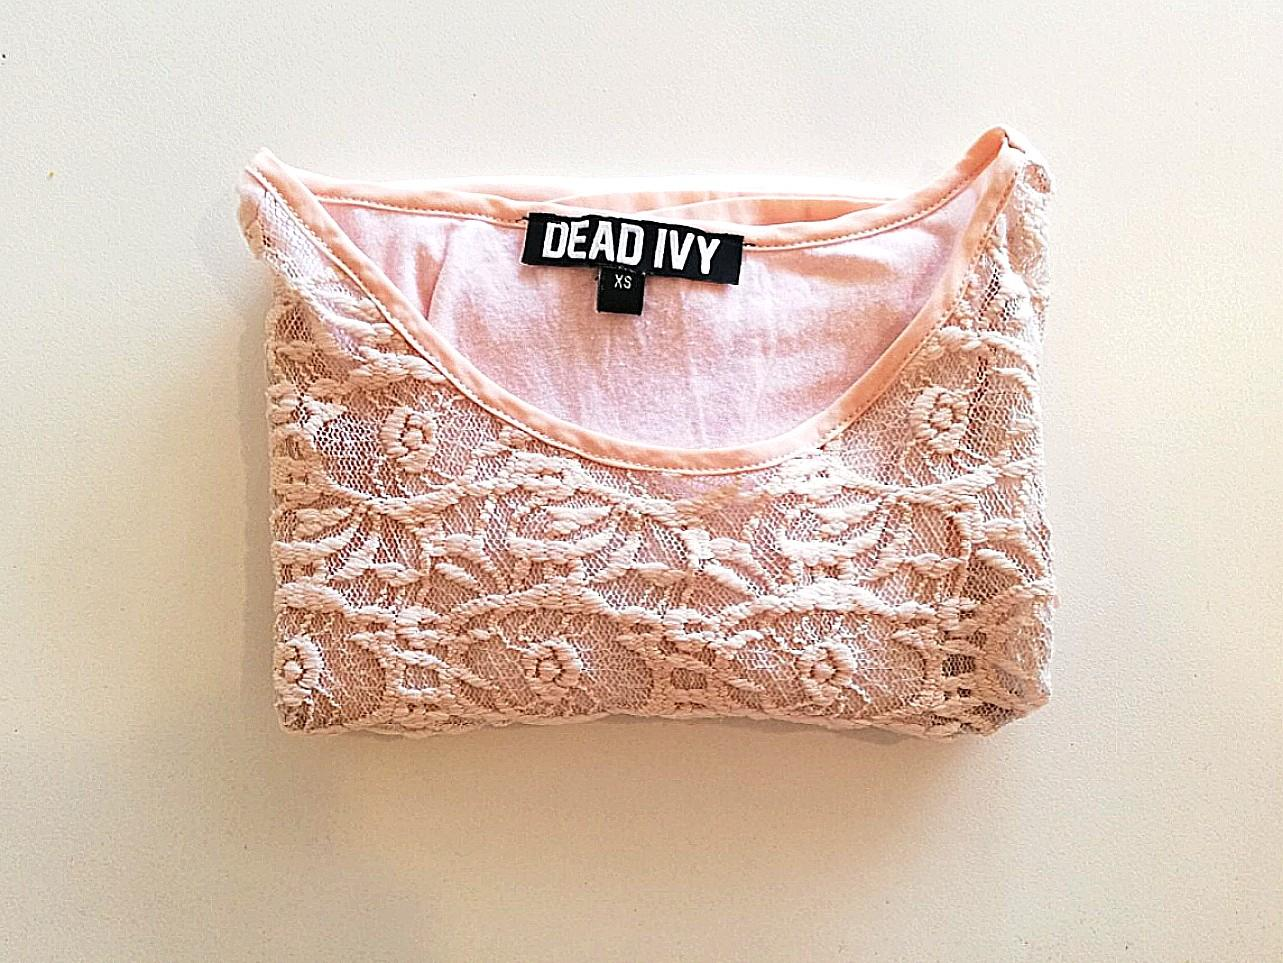 XS - Dead Ivy - Light Pink T-shirt with Lace Detail on Scoop Neck